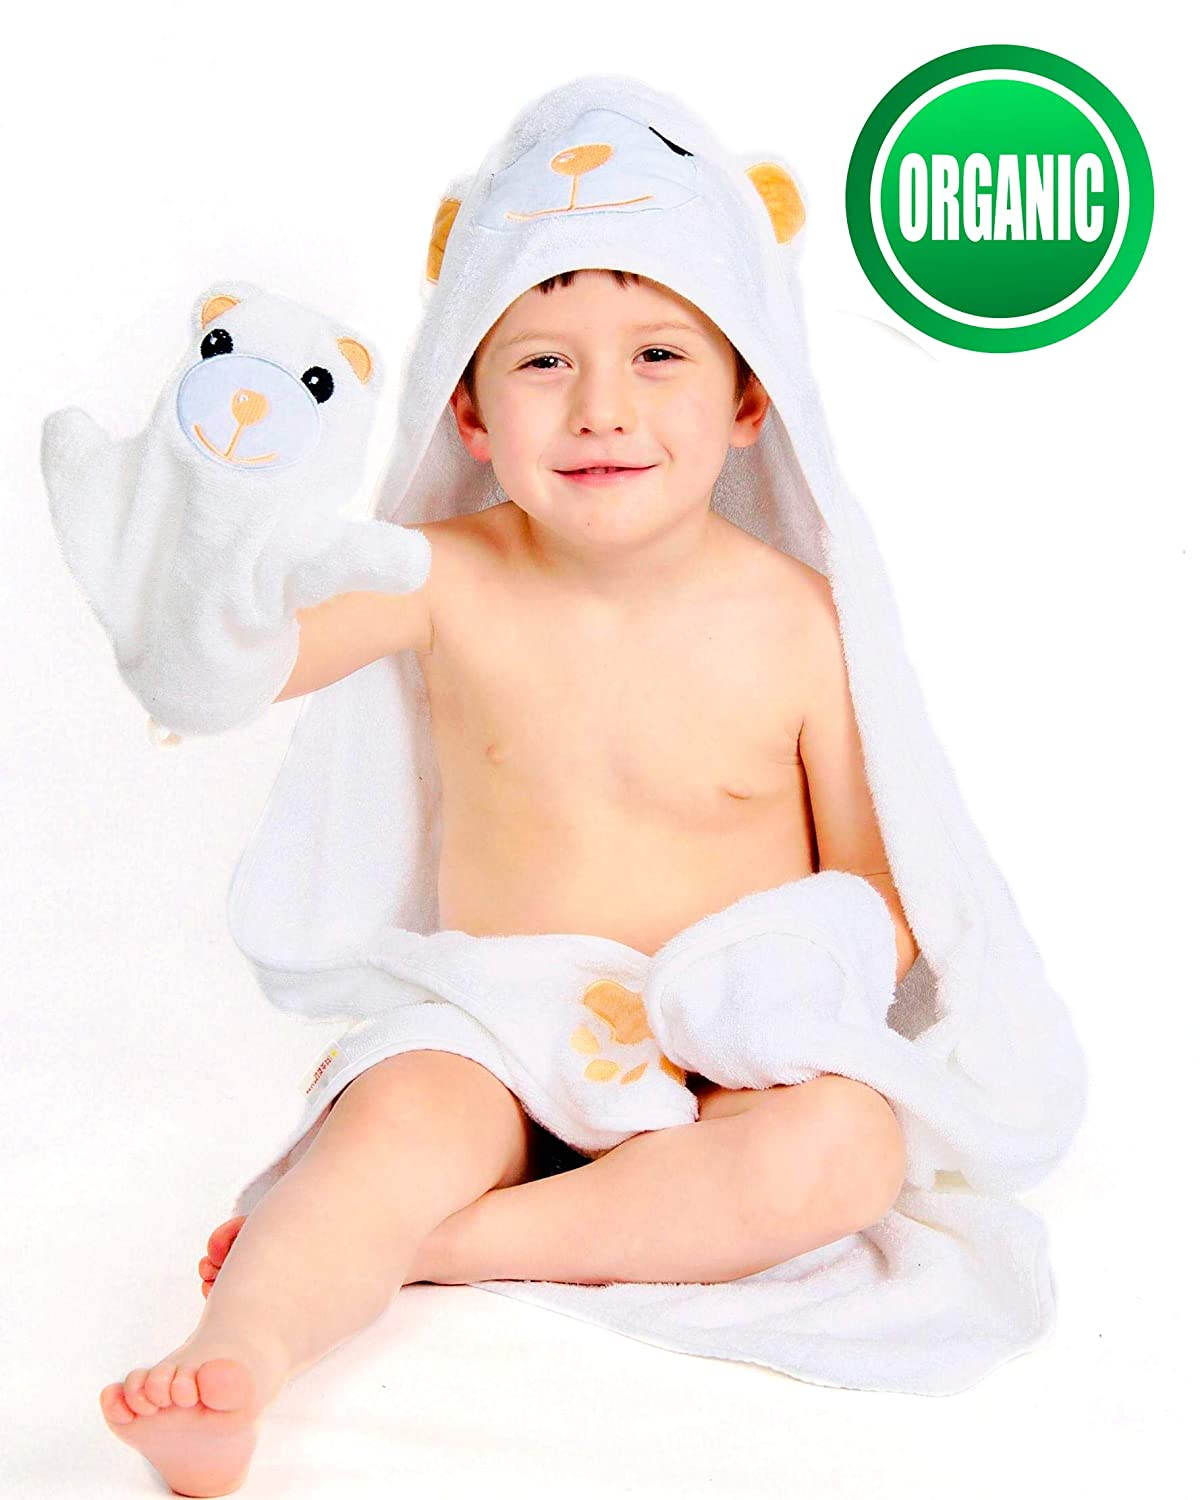 Ideal Baby Gifts for Baby Showers and Birthdays | Large Ultra Absorbent 35x35 Inches 100/% Organic Bamboo Hooded Baby Towel and Washcloth Set 500 GSM Premium Extra Soft and Thick Bath Towels